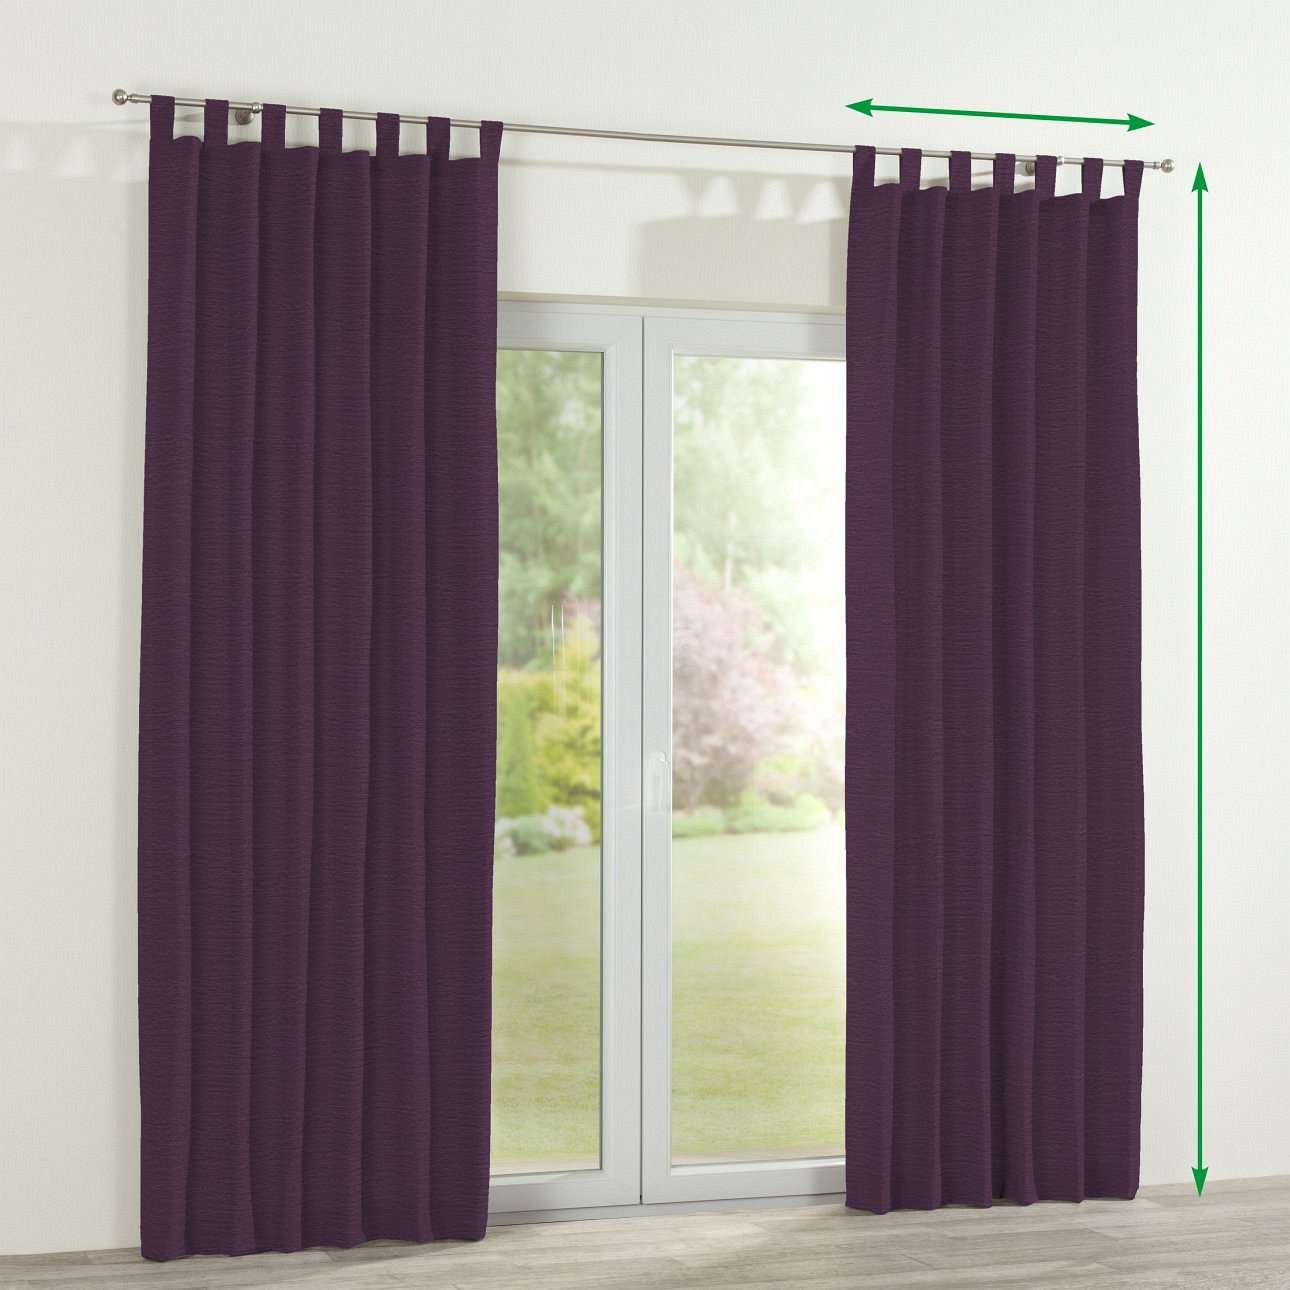 Tab top lined curtains in collection Chenille, fabric: 160-46